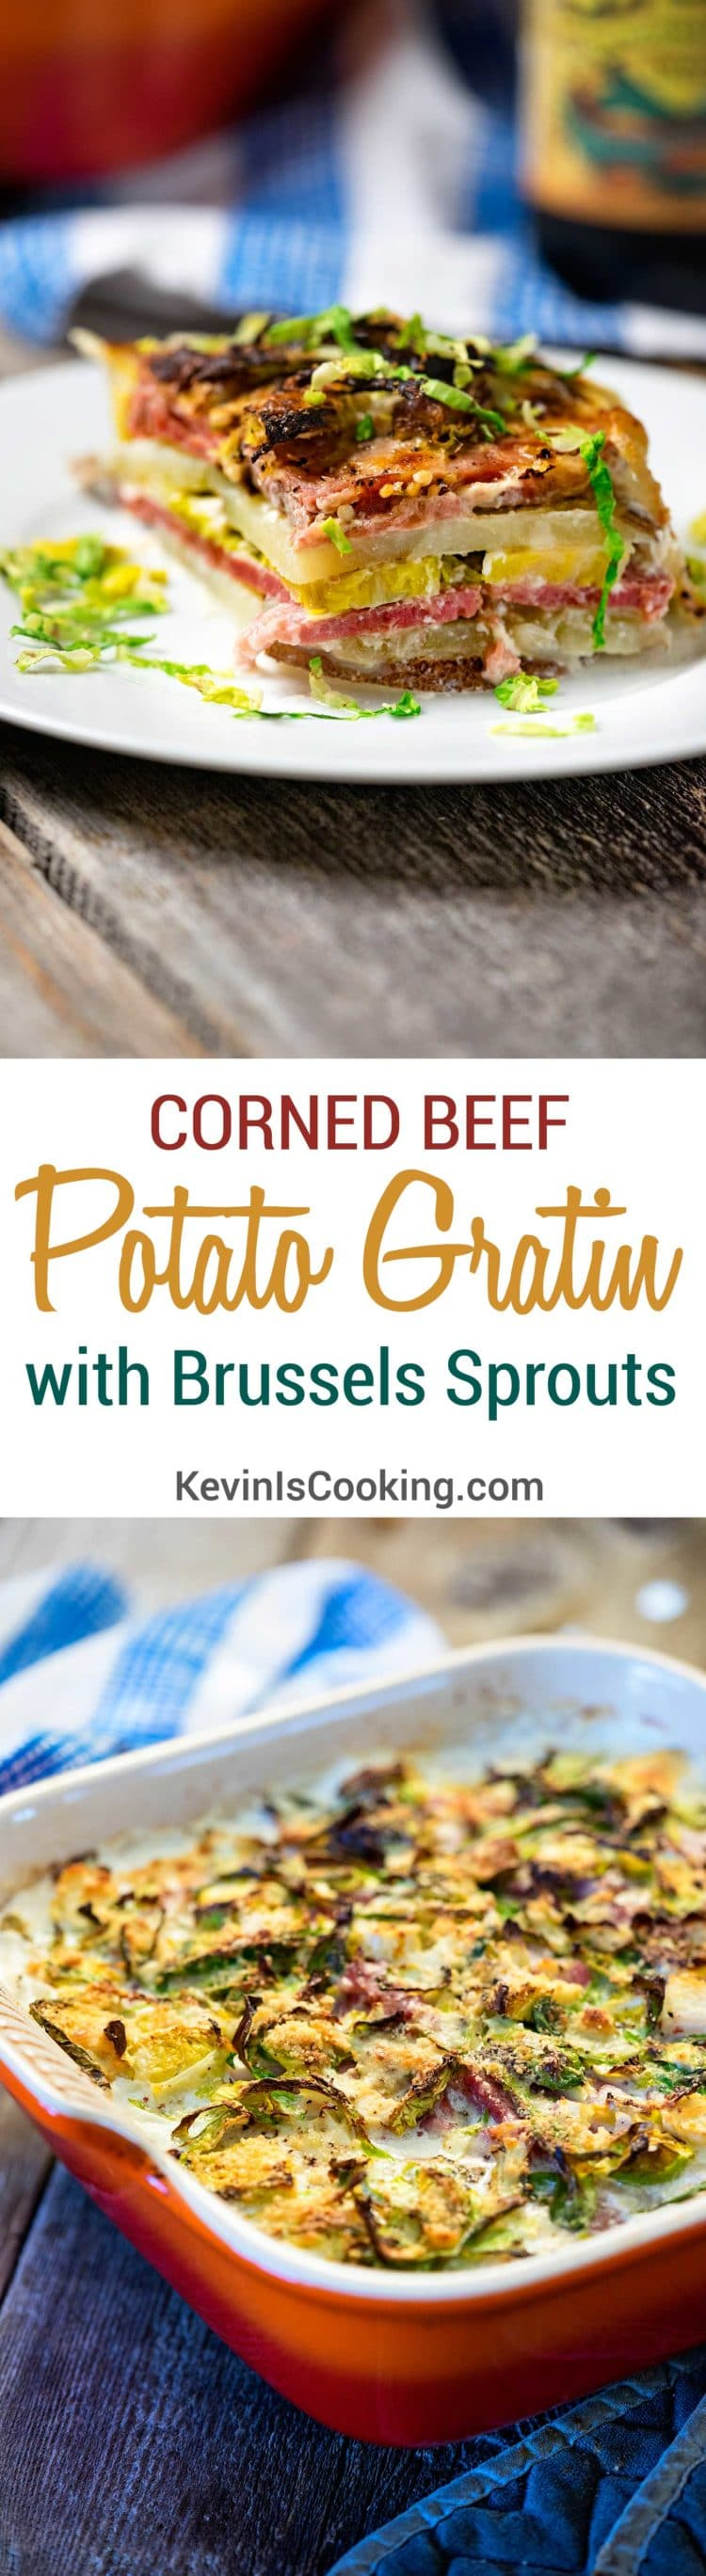 Corned Beef Potato Gratin with Brussels Sprouts. www.keviniscooking.com